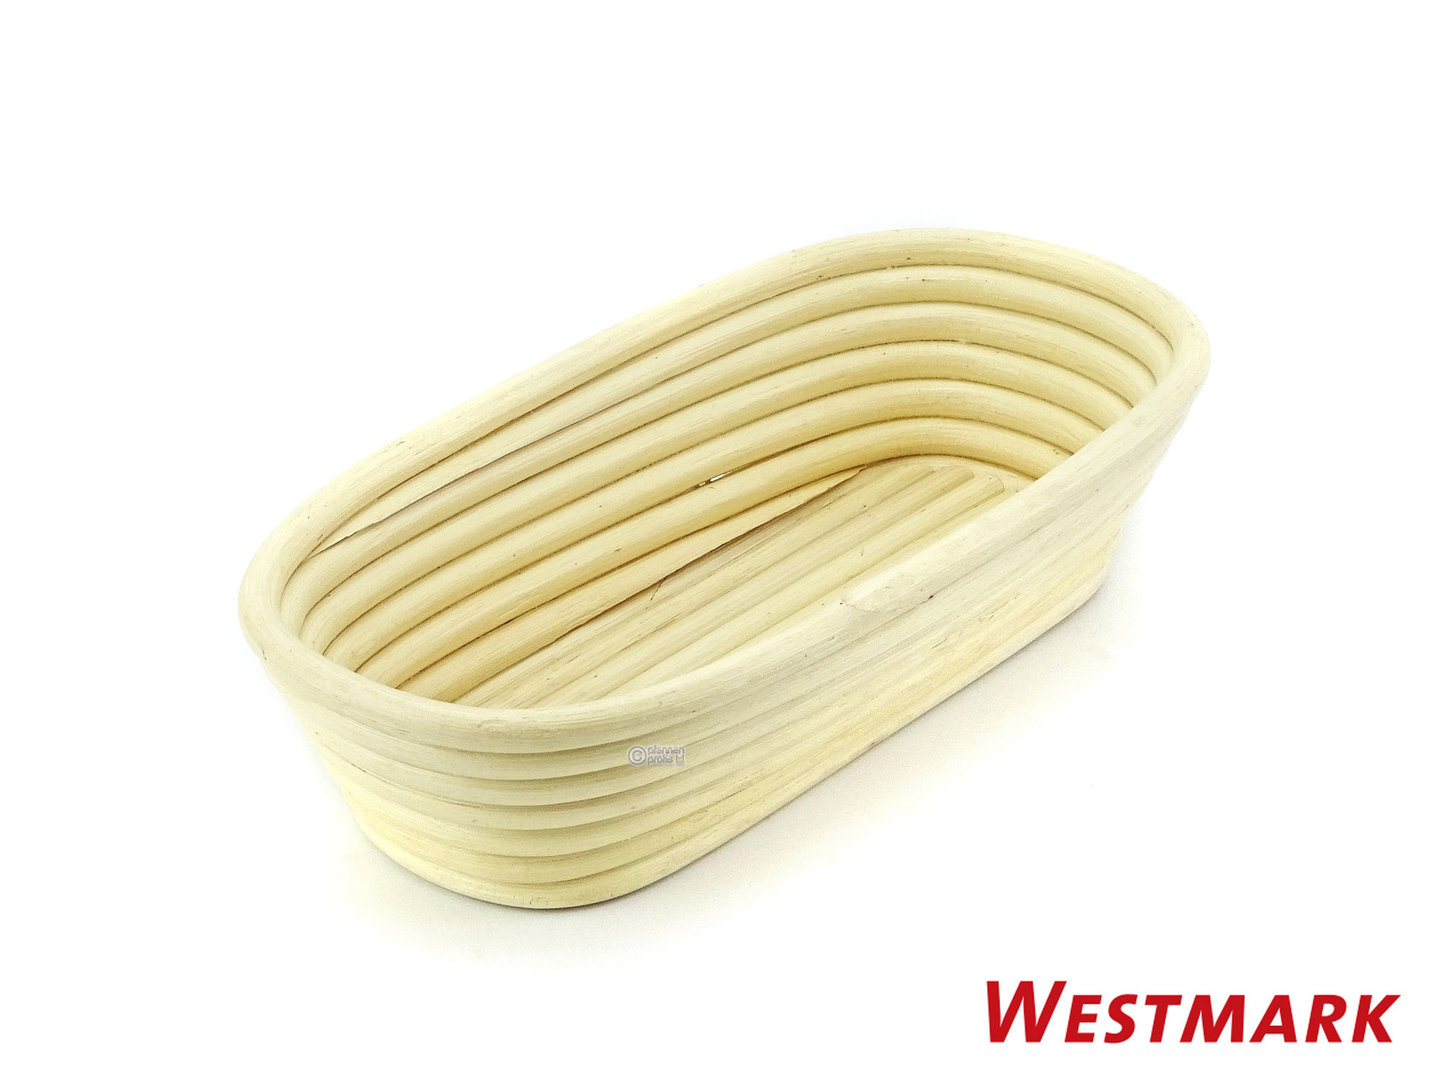 WESTMARK proofing basket oval small